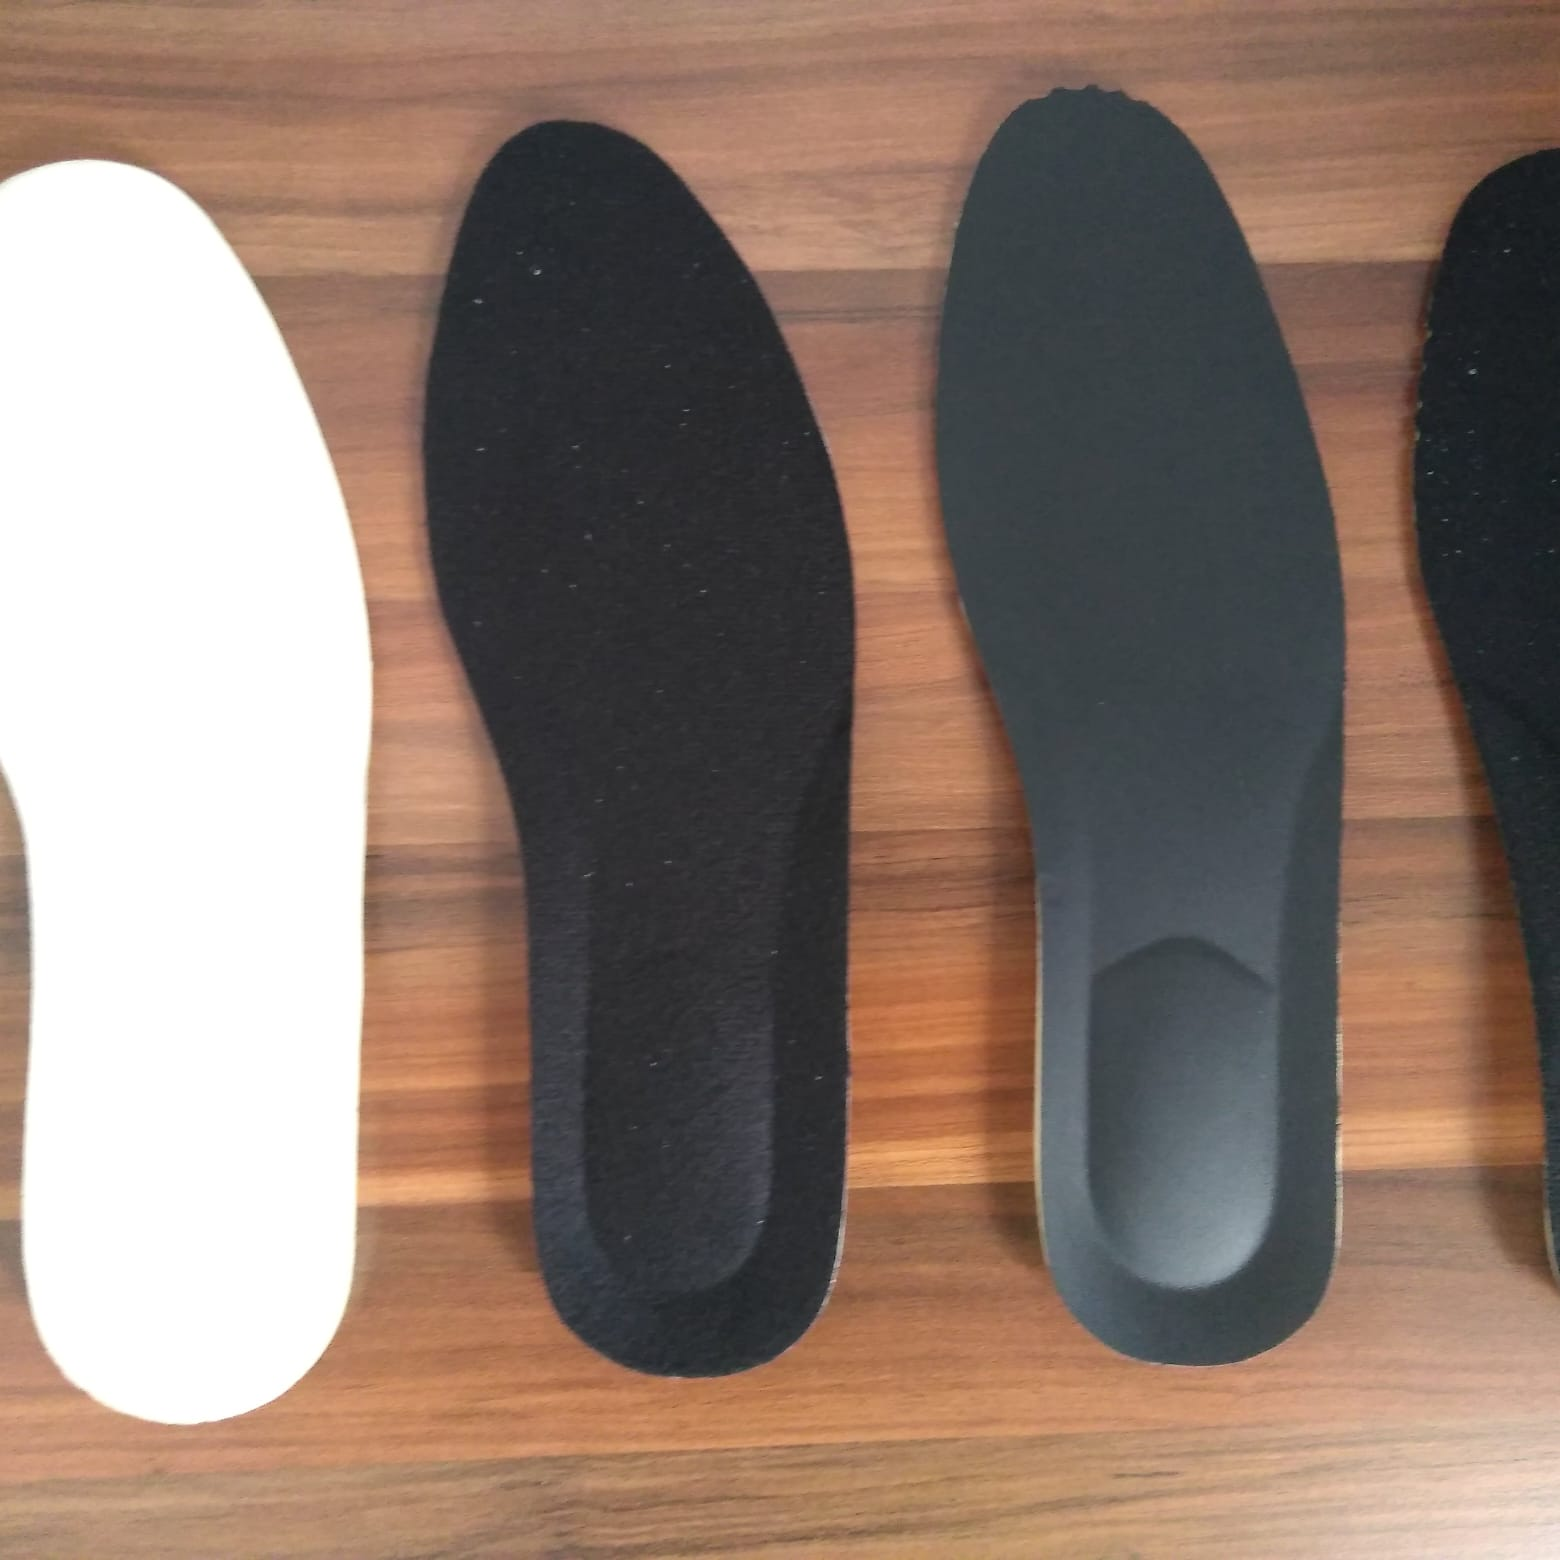 Insoles for shoes: Simple , Imitation, Alkantra